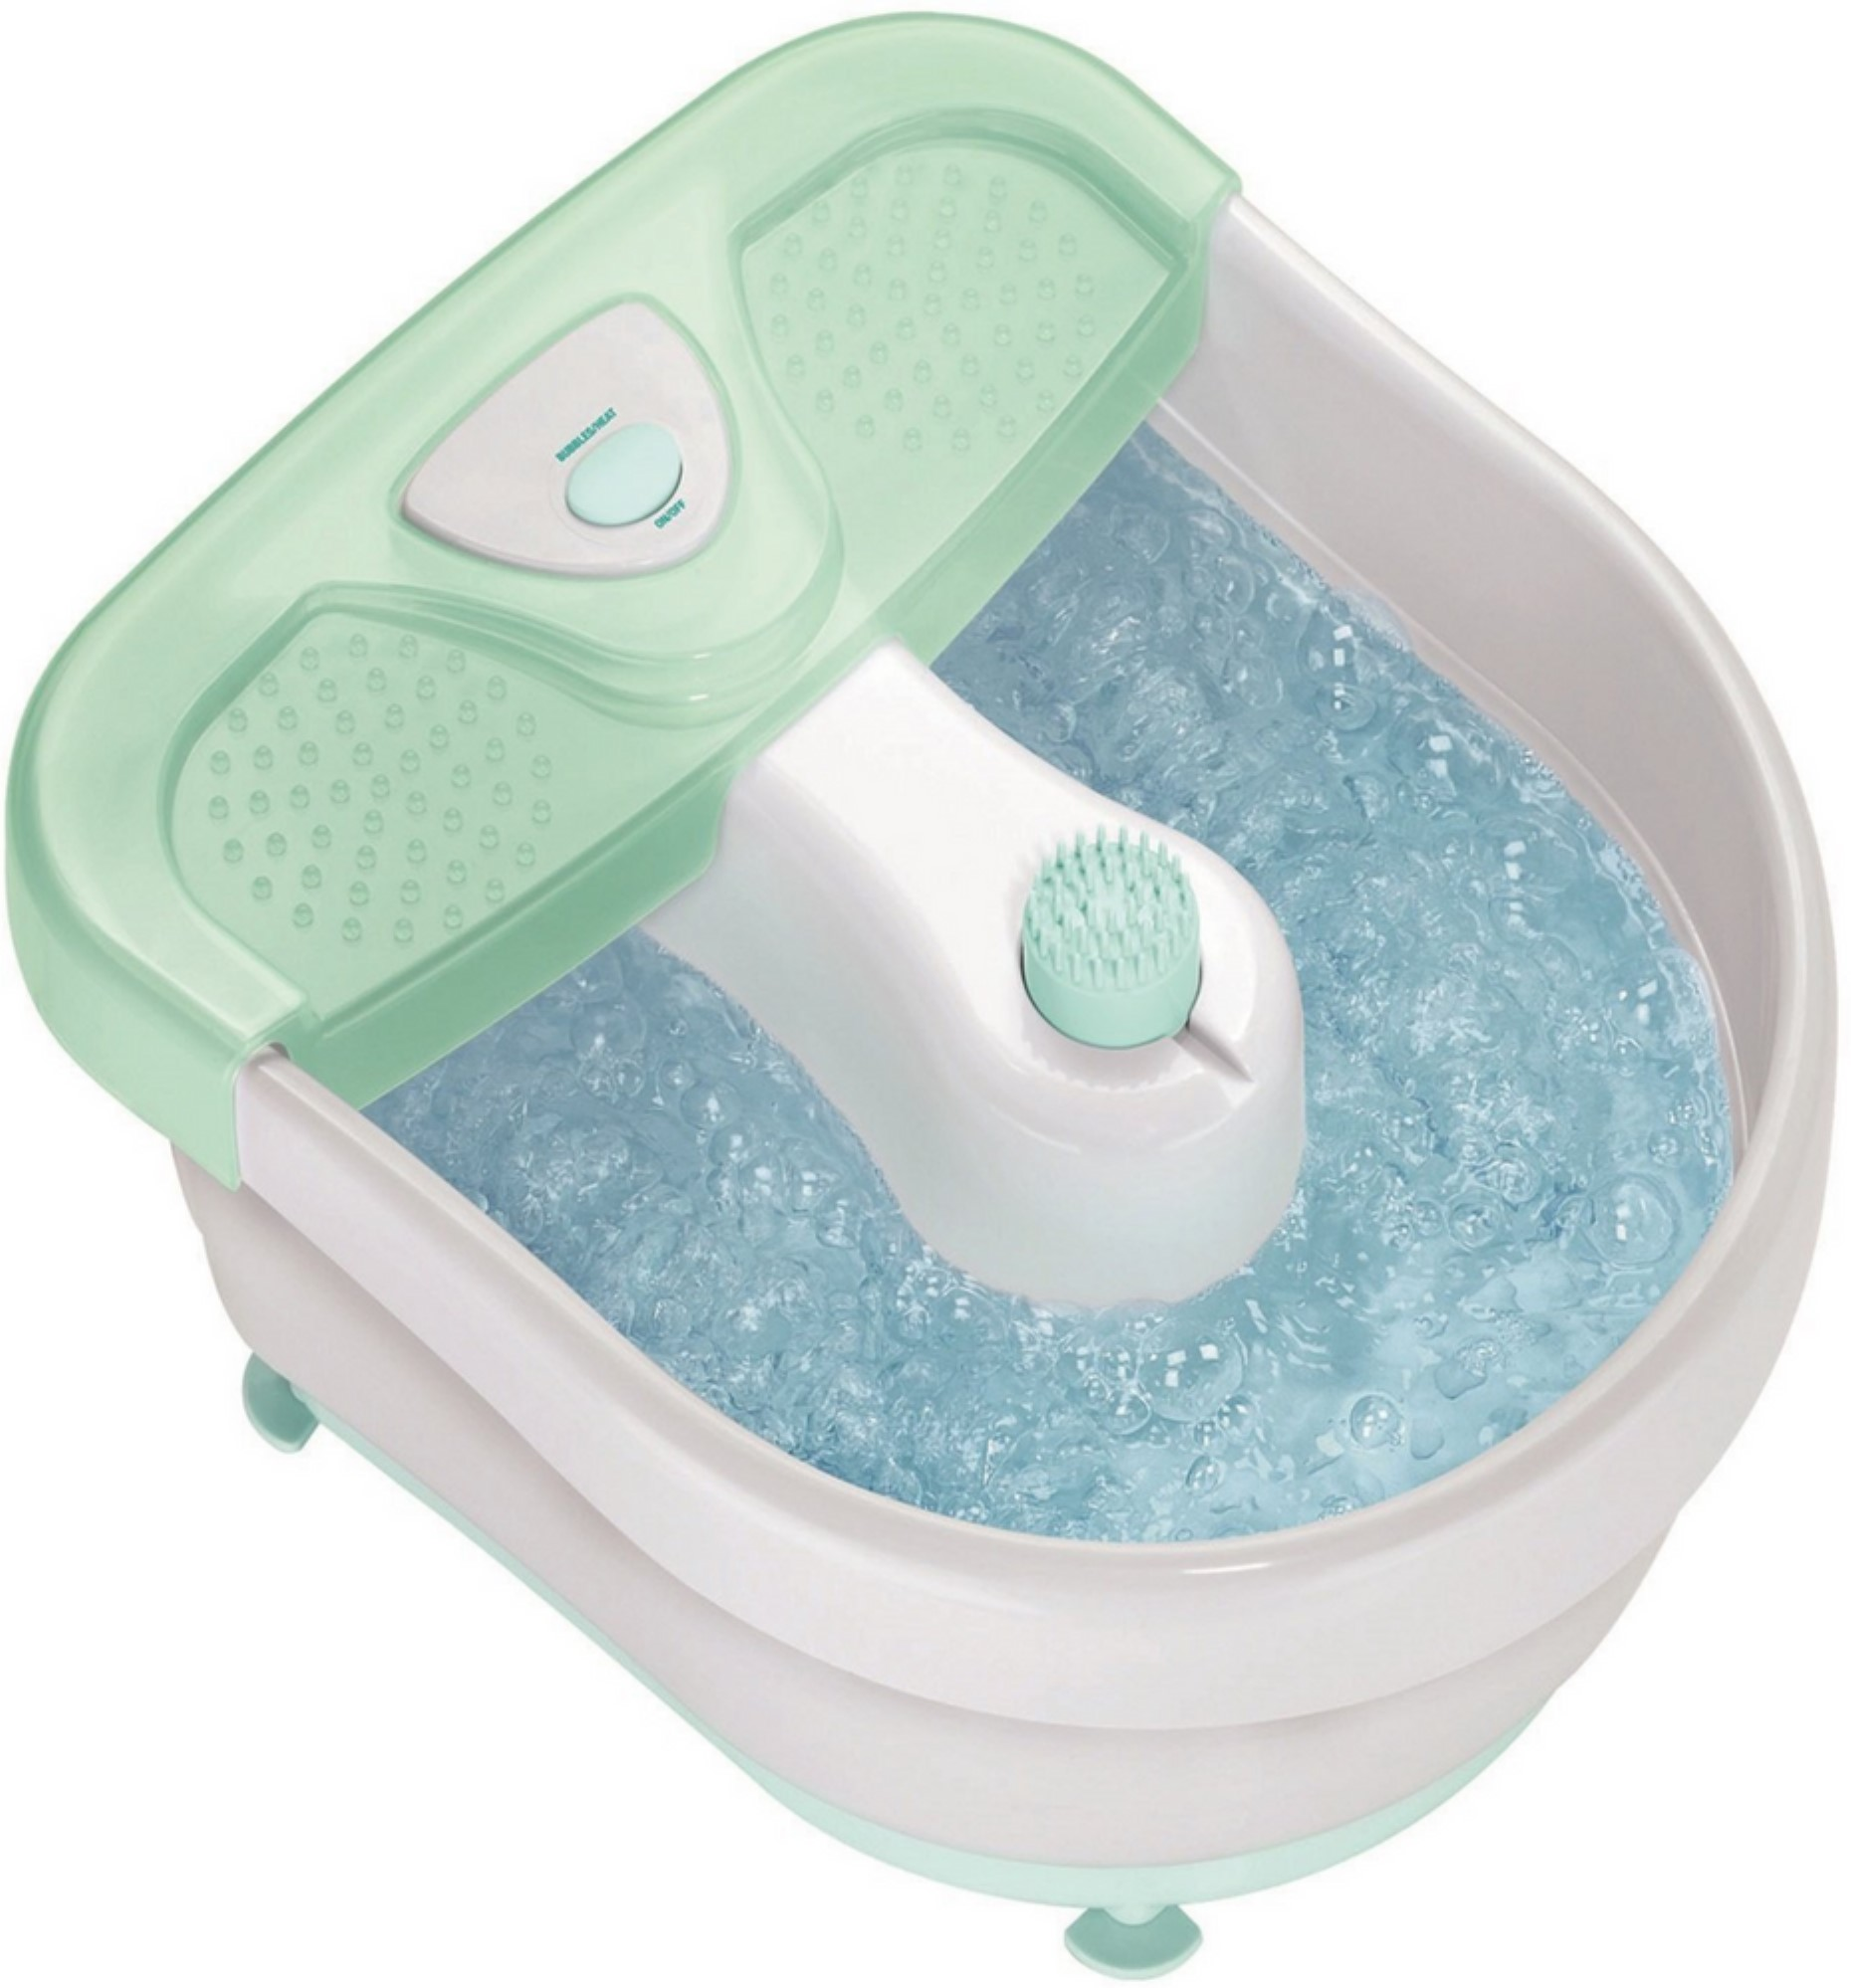 Factors to consider when choosing a foot spa